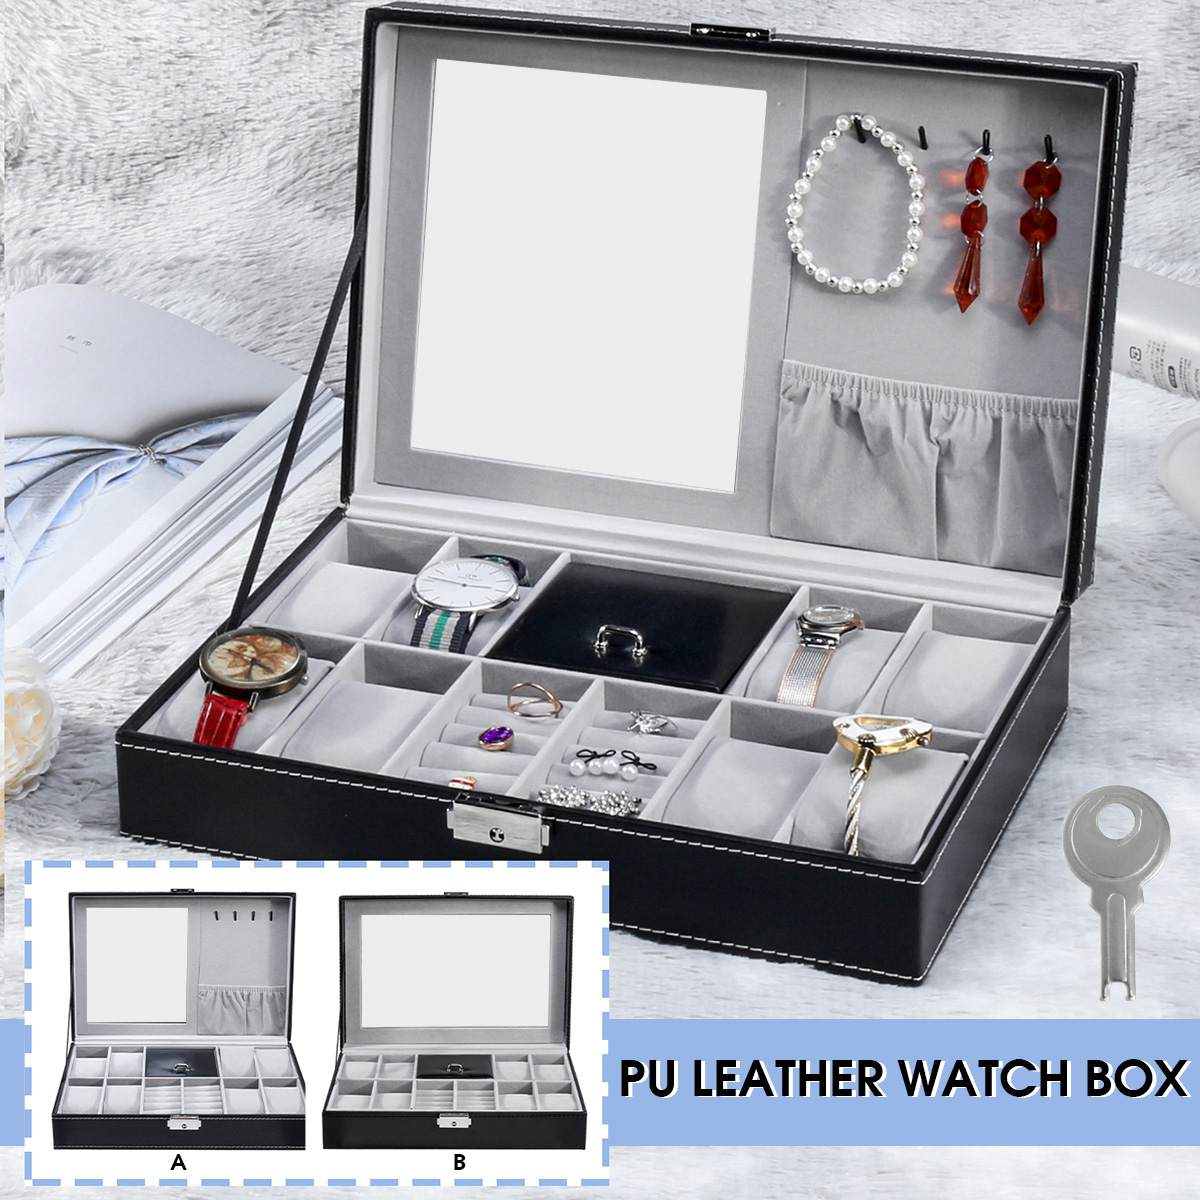 NEW 2 In One 8 Grids+3 Mixed Grids Storage Black PU Leather Watch Boxes Organizer Box Luxury Jewelry Ring Display Watch Case